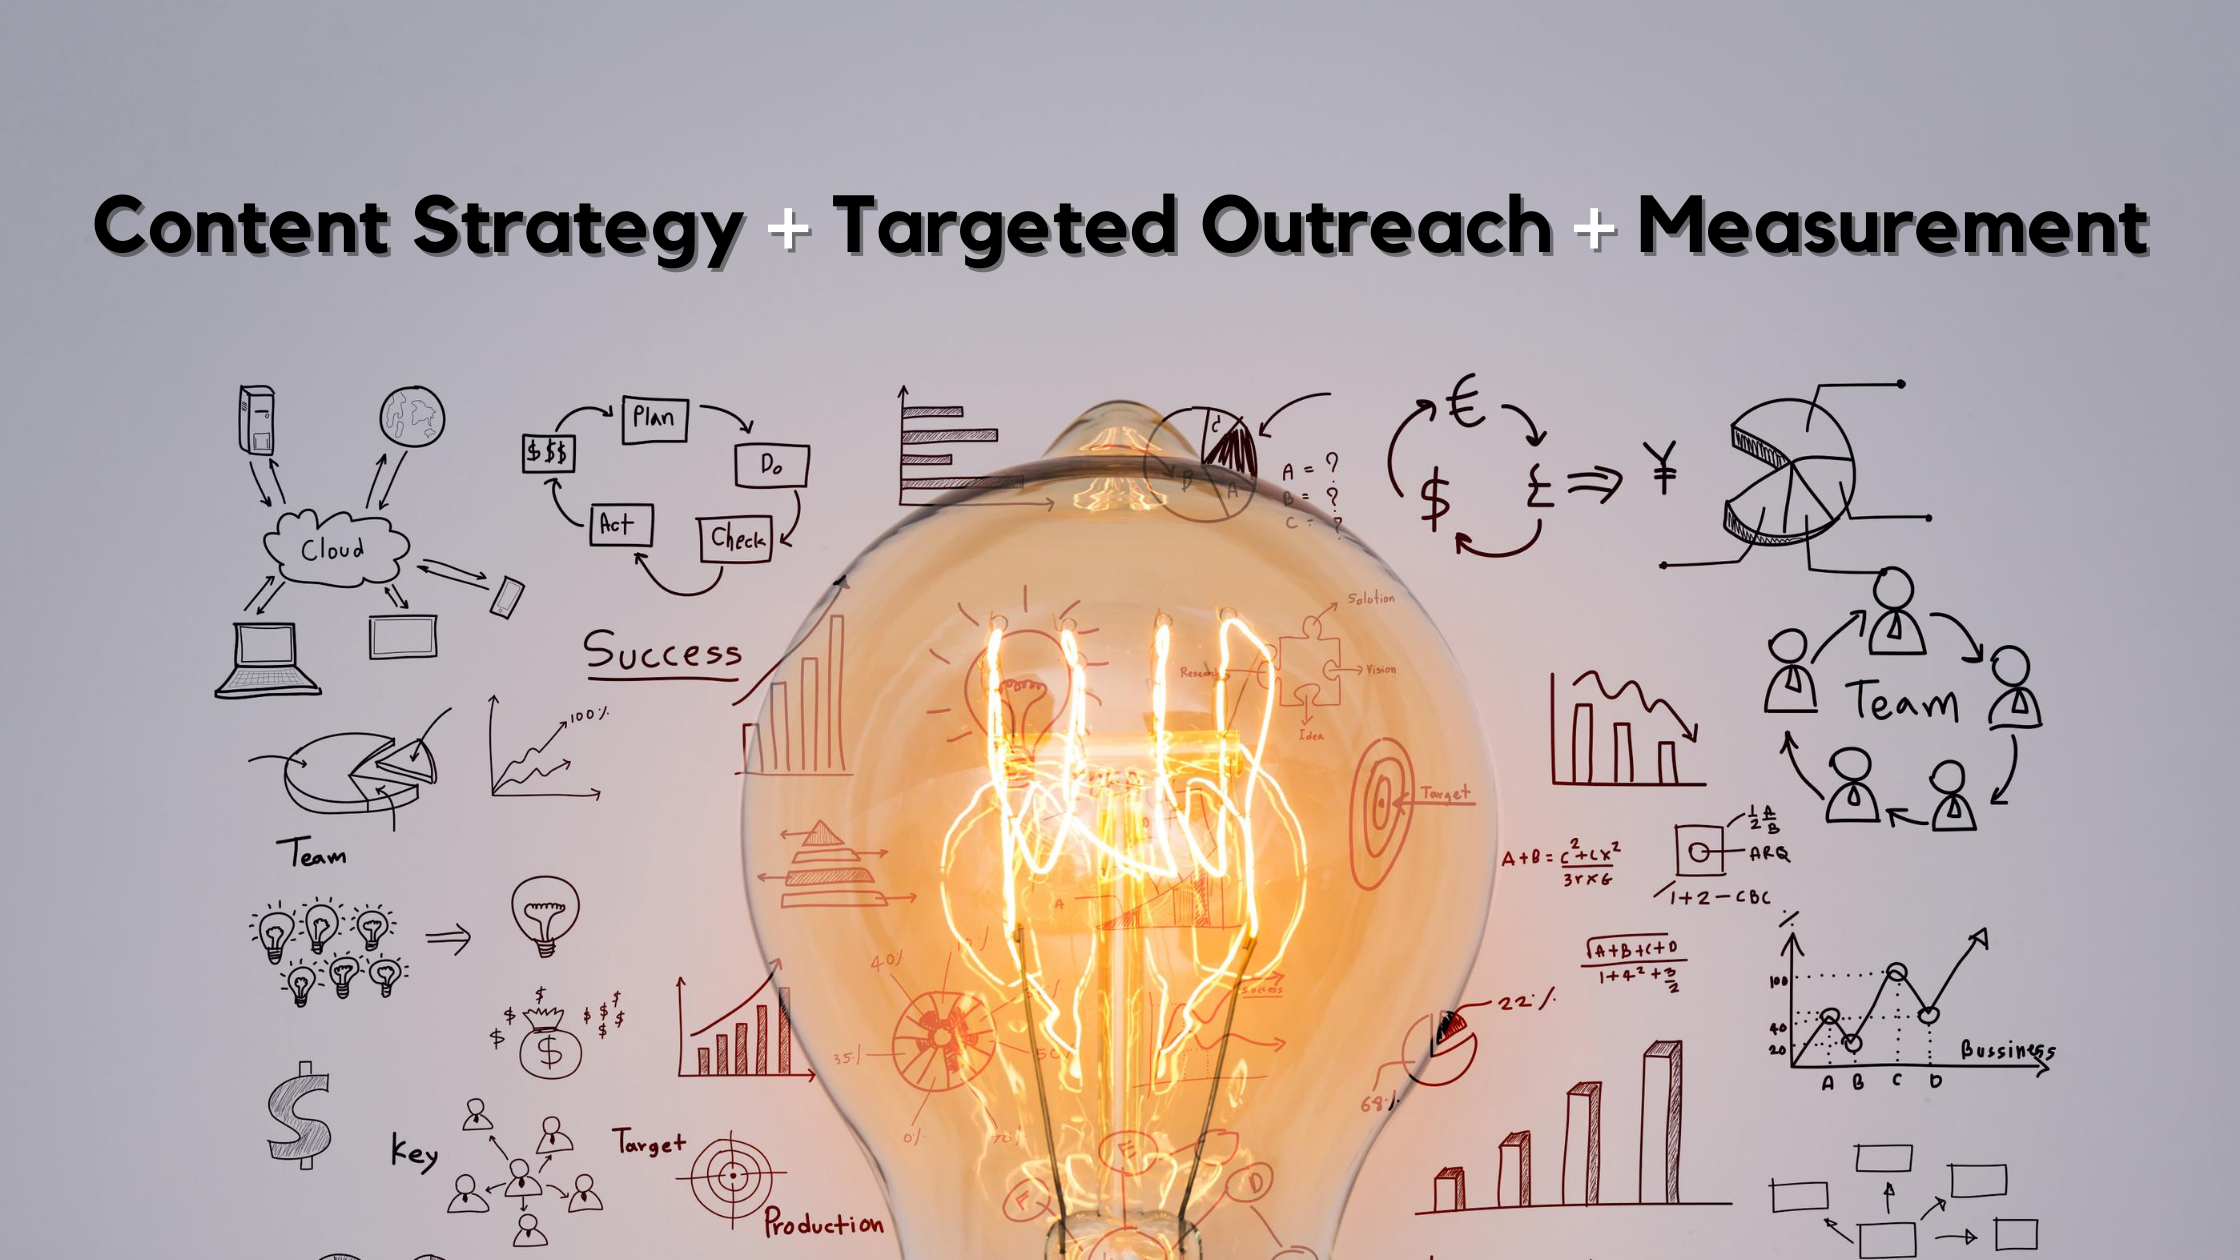 A 3-Point Strategy to Achieve your Content Marketing Goals